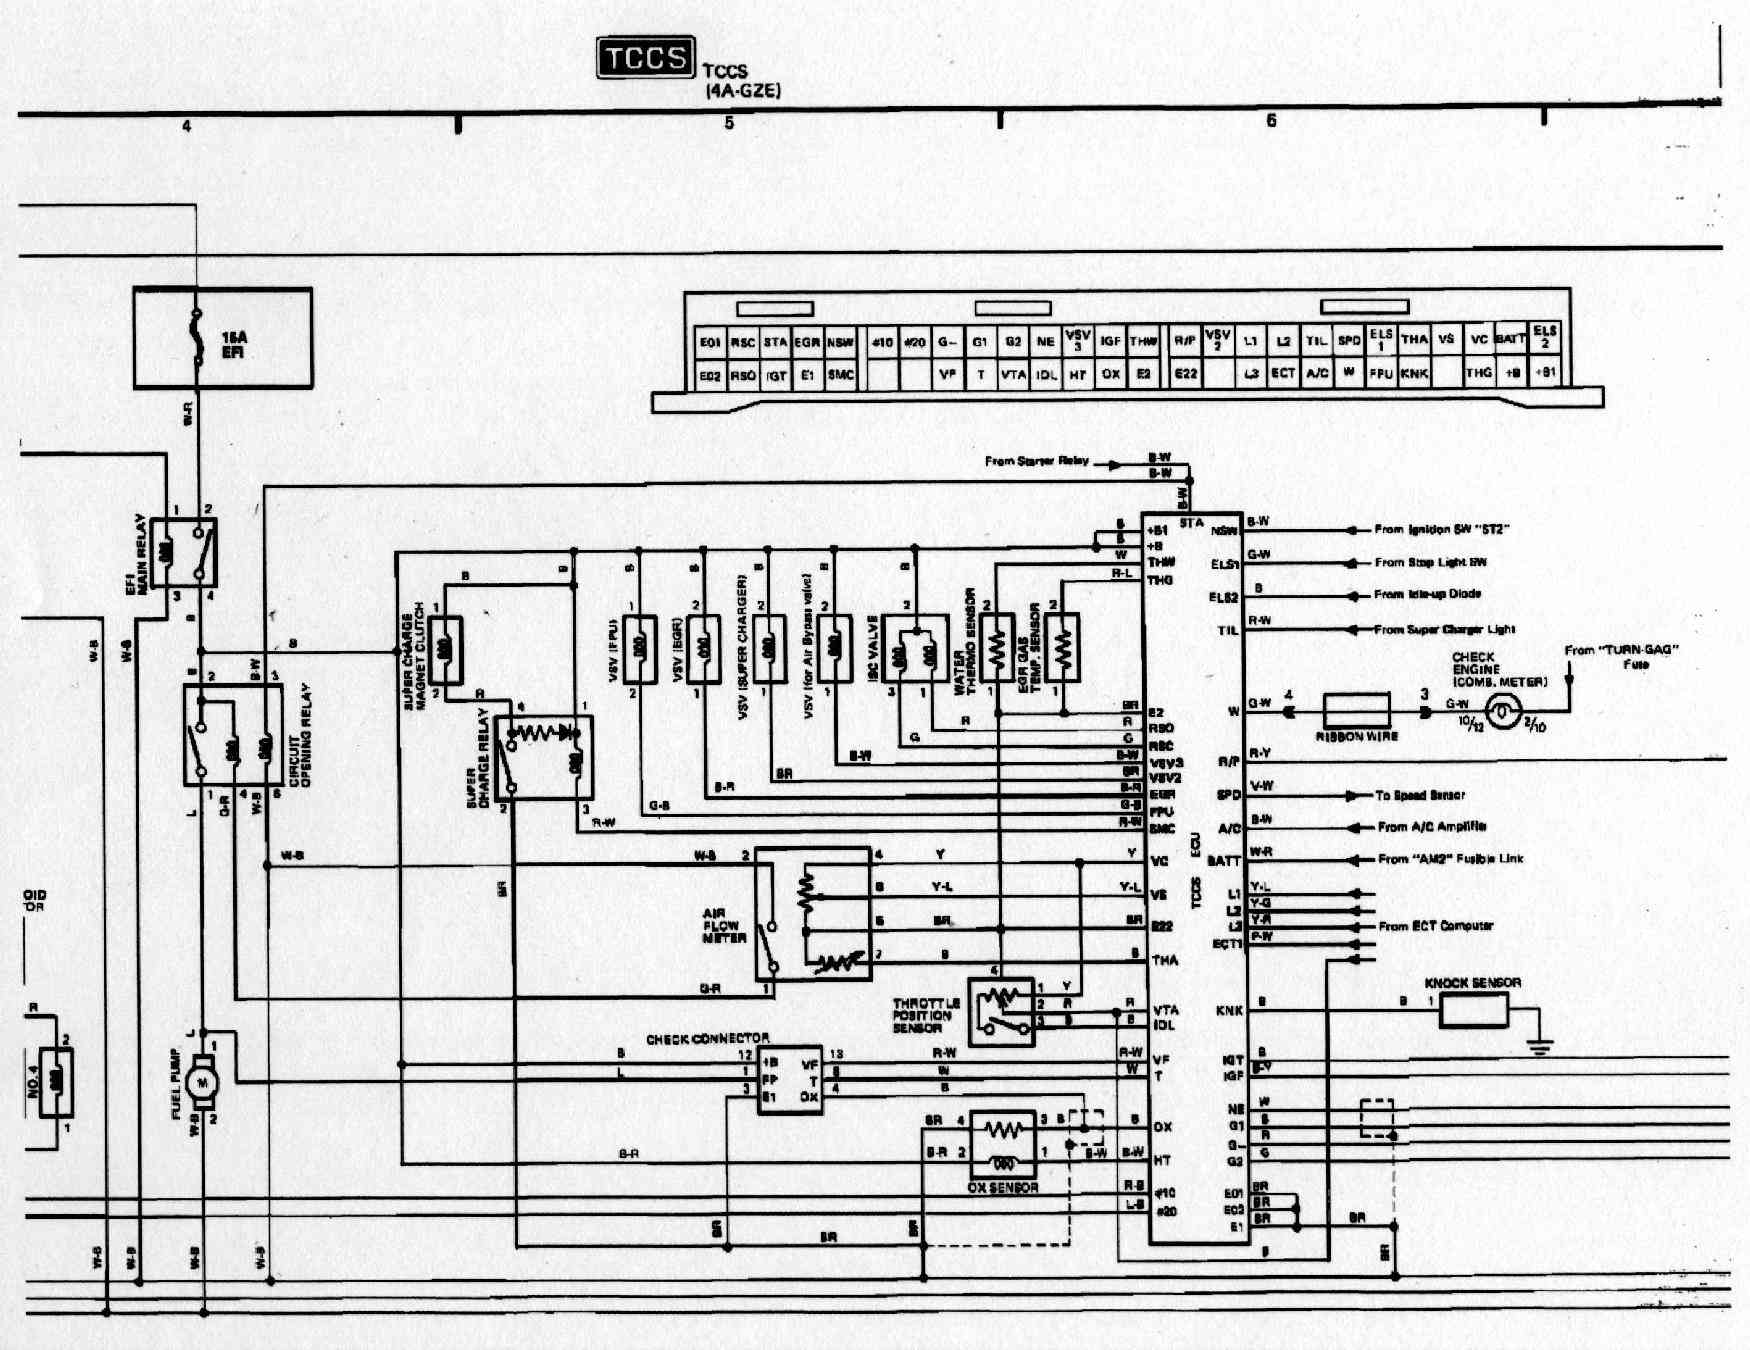 1985 toyota mr2 wiring diagram chevy prizm parts 85 get free image about